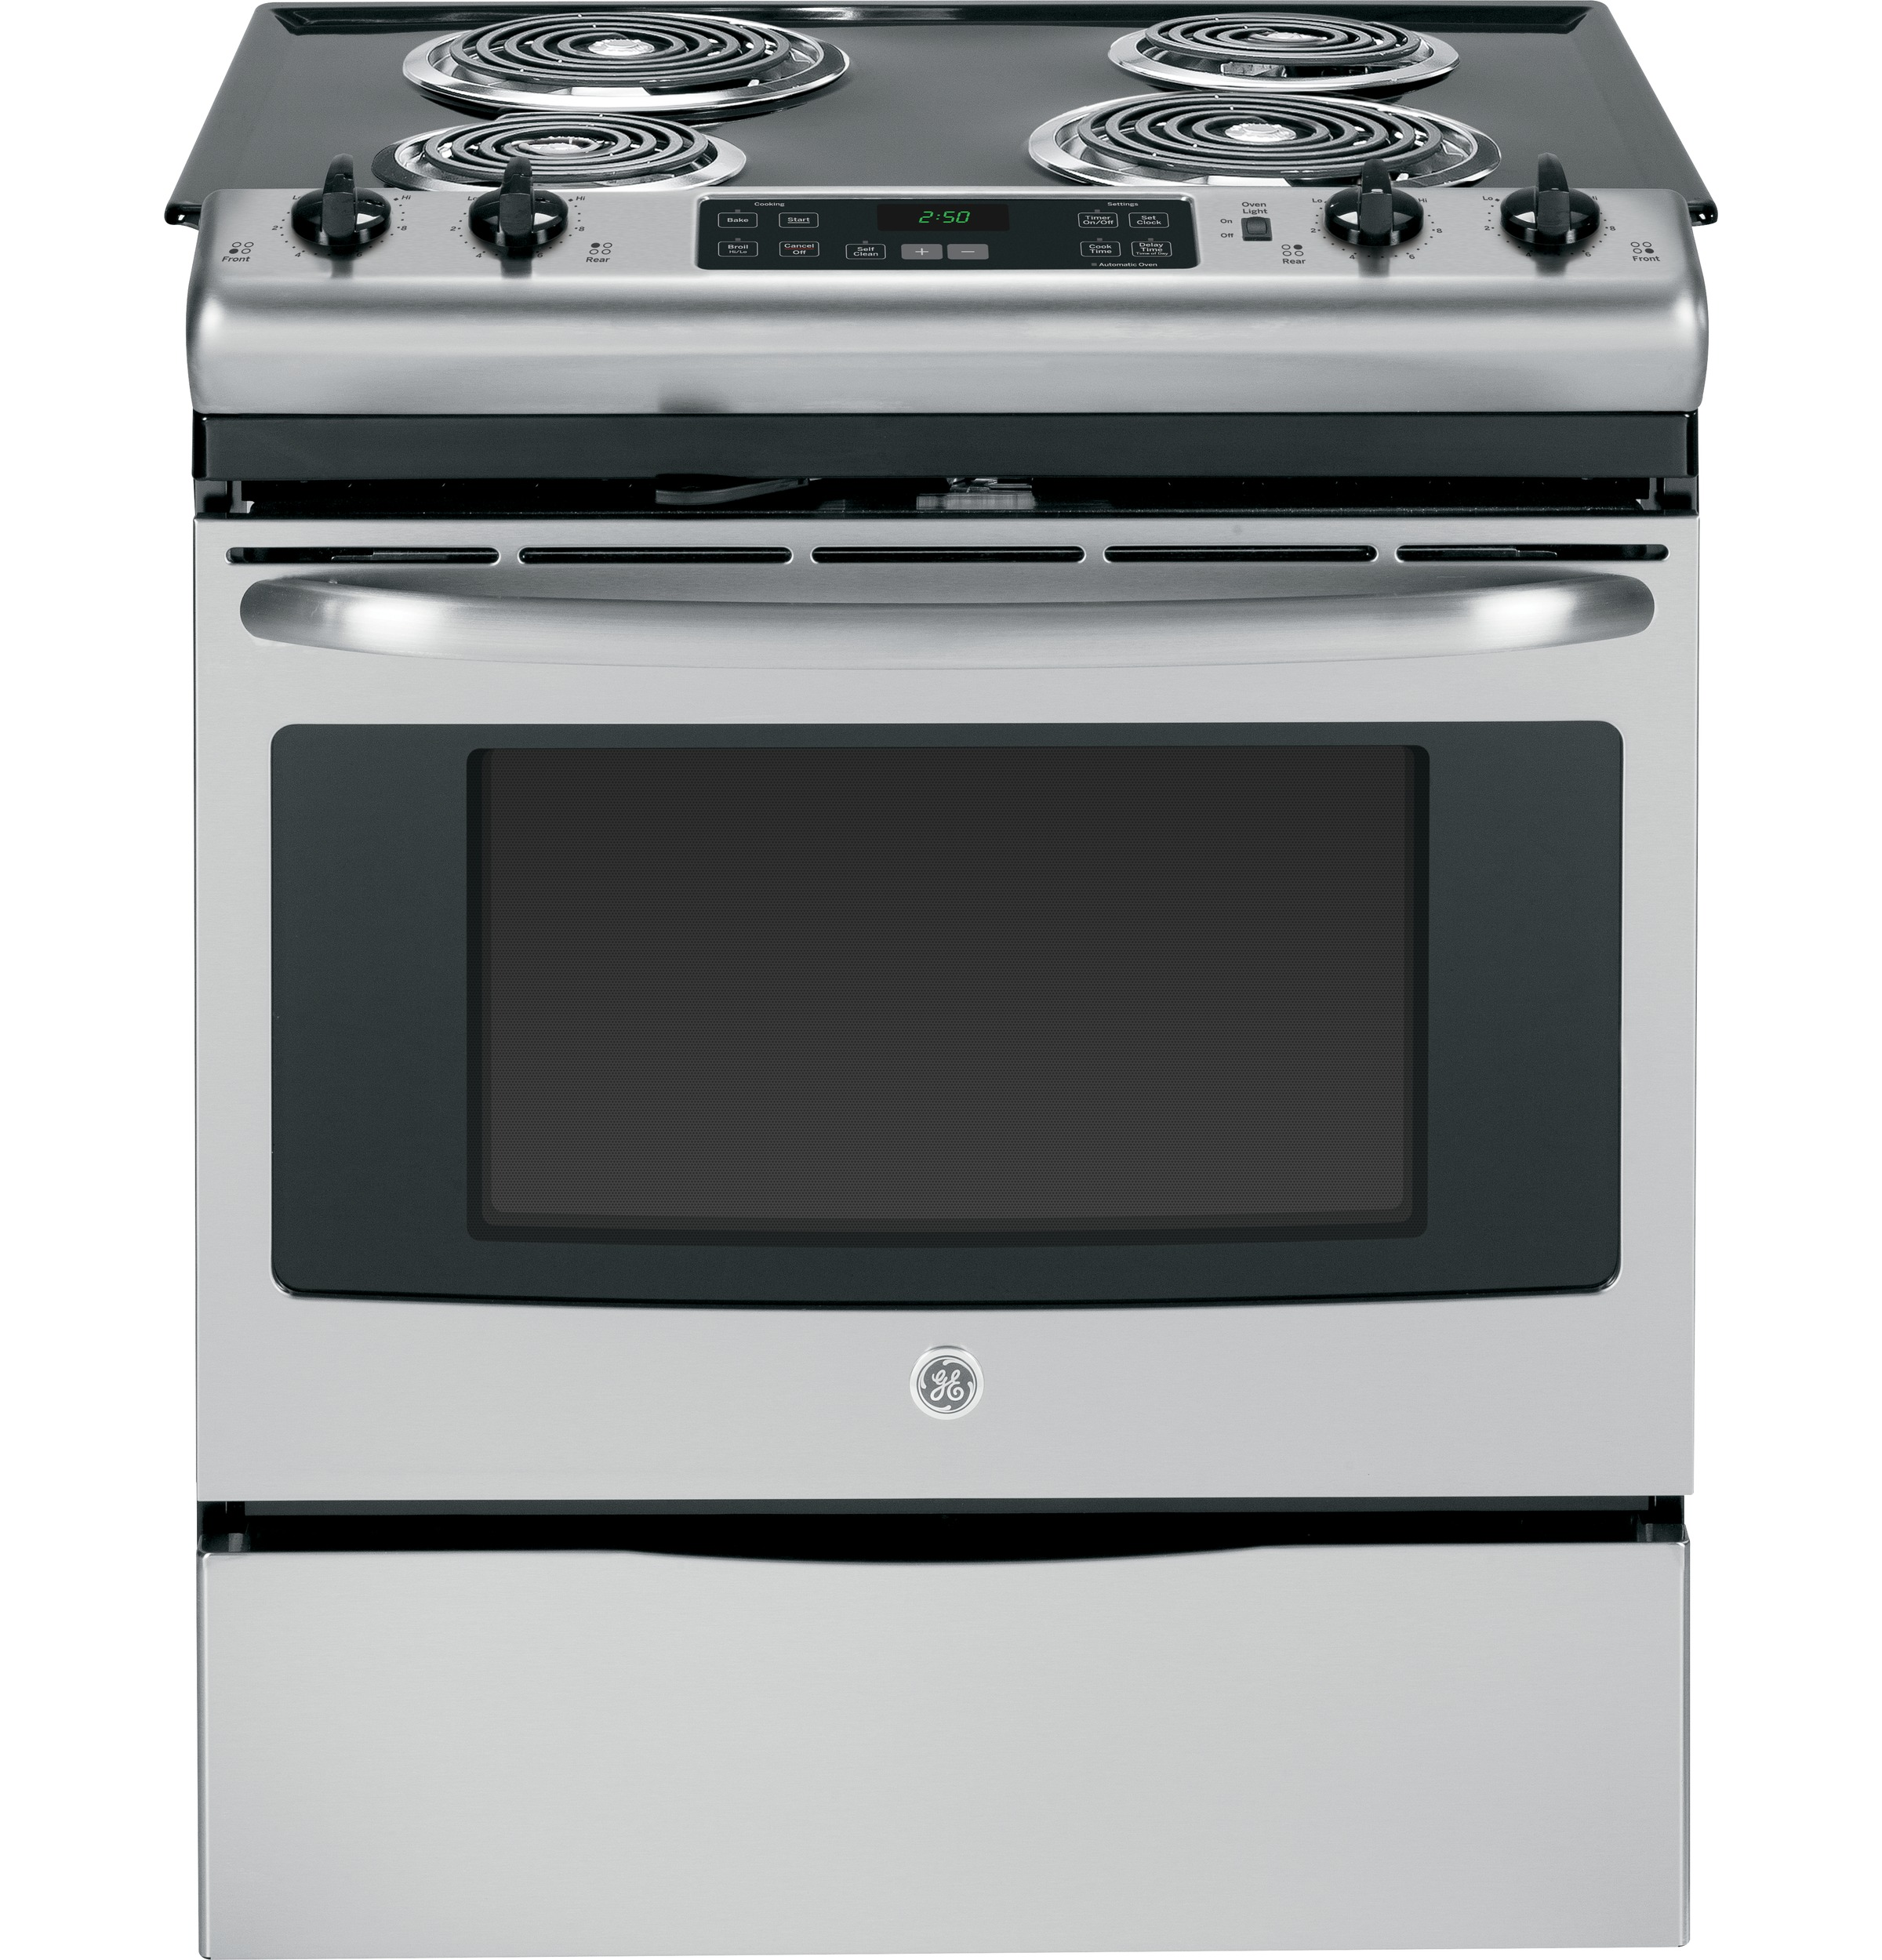 GE Appliances 30 Slide-In Electric Range - Stainless Steel